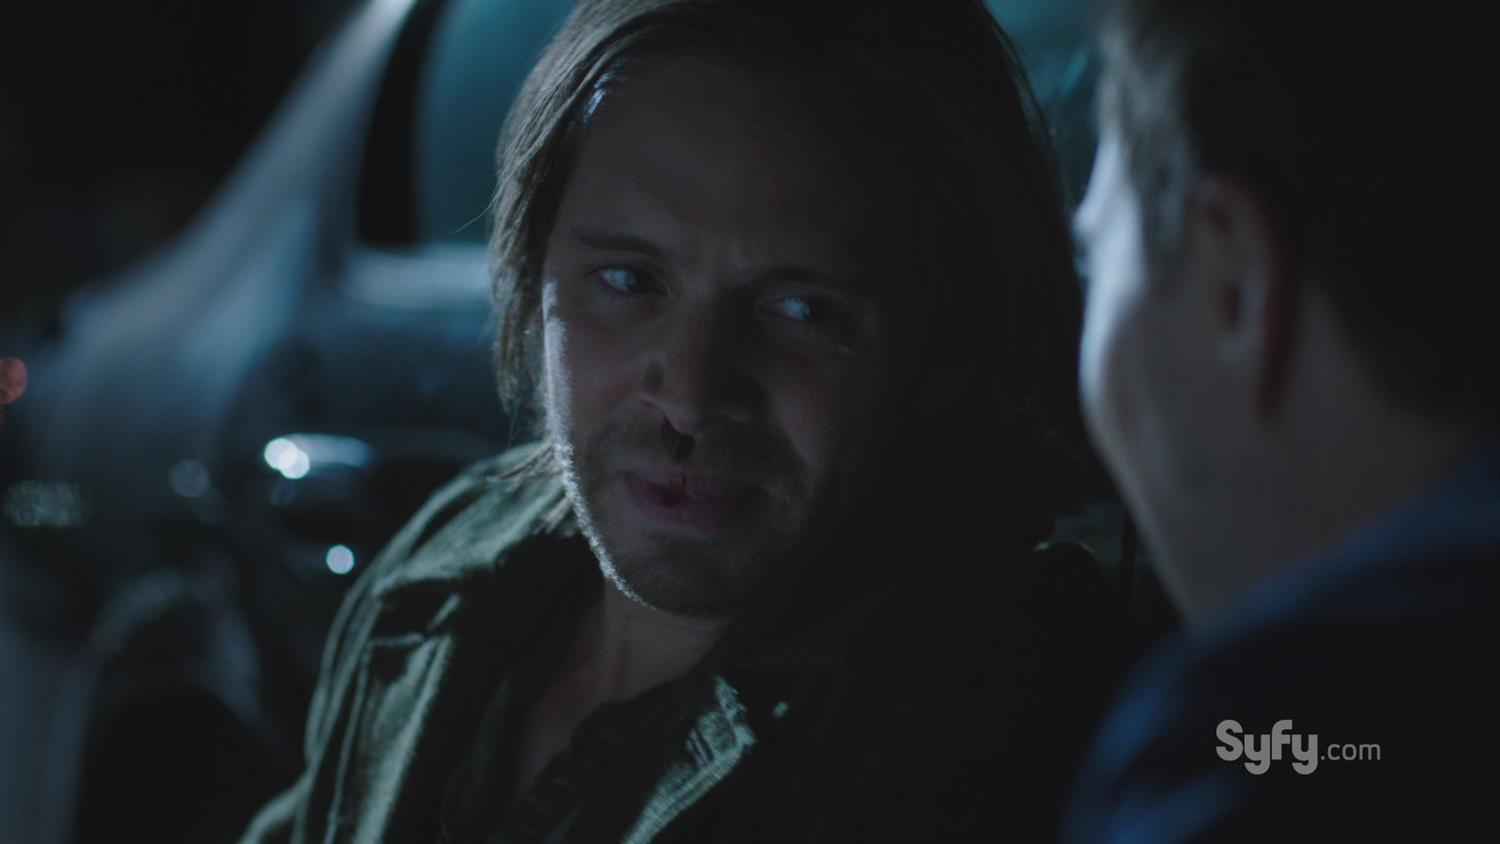 Inside 12 Monkeys: Episode 6